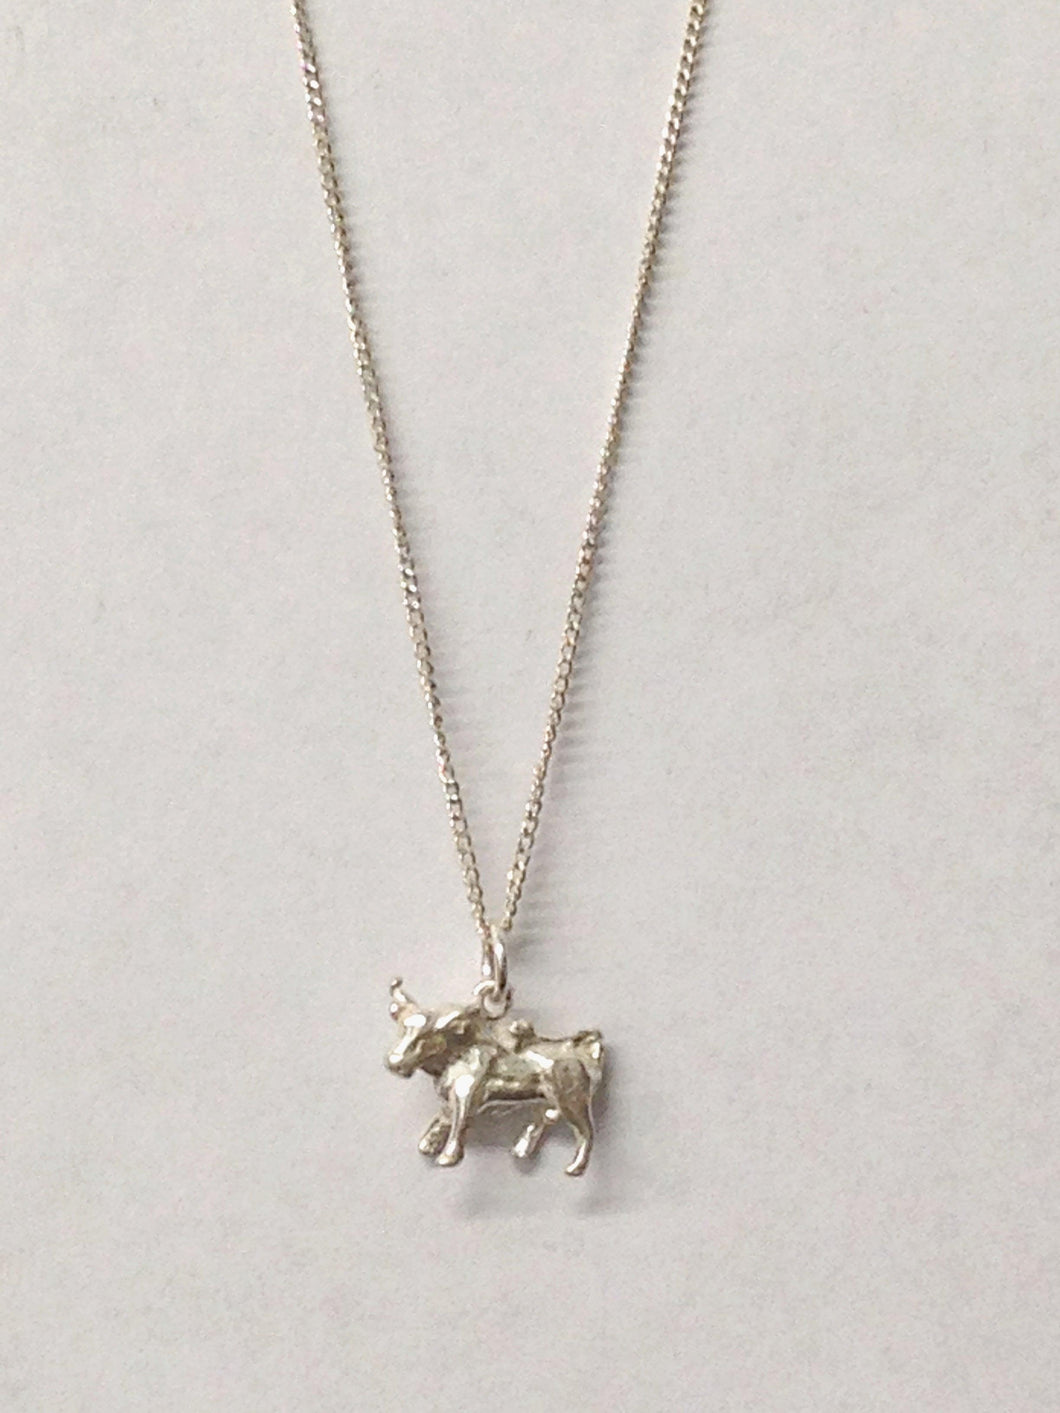 www.hersandhistreasures.com/products/Sterling-Silver-Bull-Pendant-Necklace